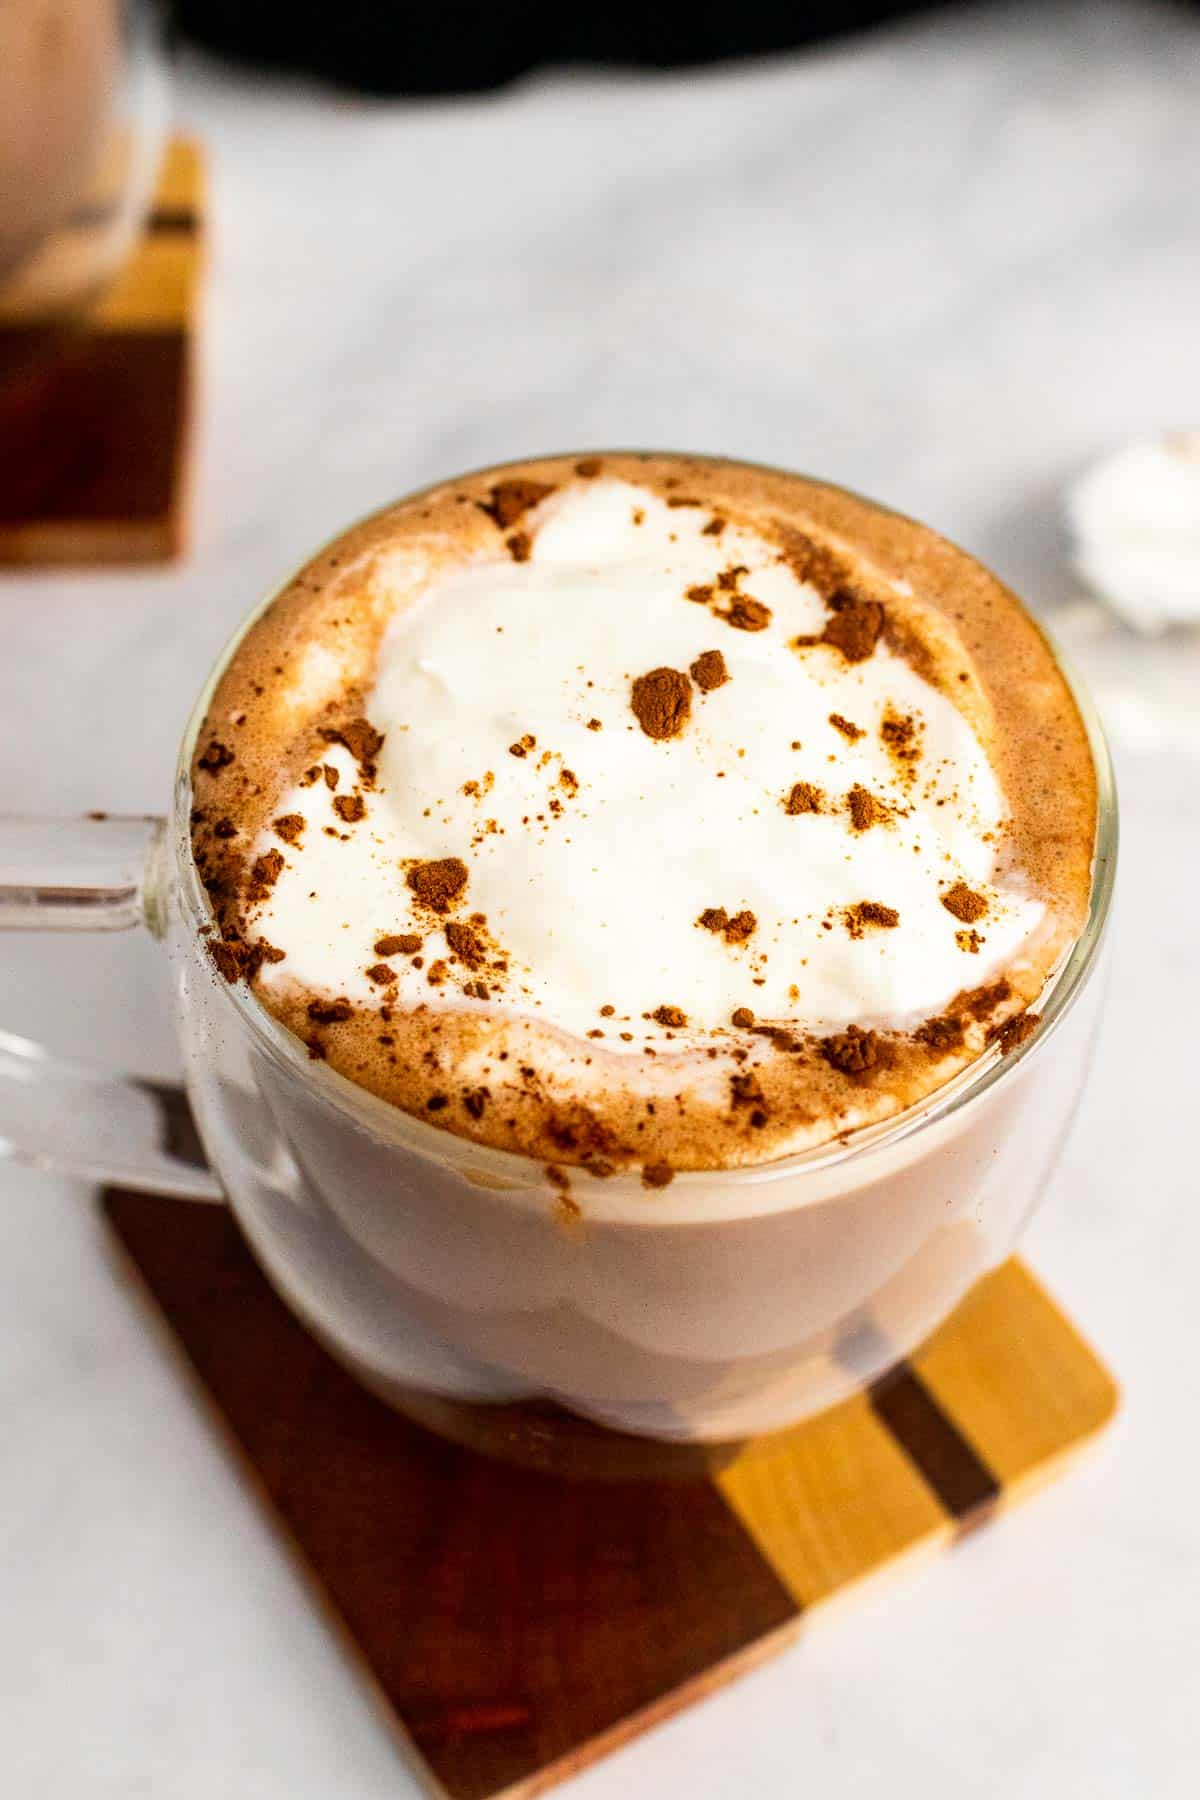 Close-up of hot chocolate in a clear plastic mug, topped with whipped cream and cocoa powder